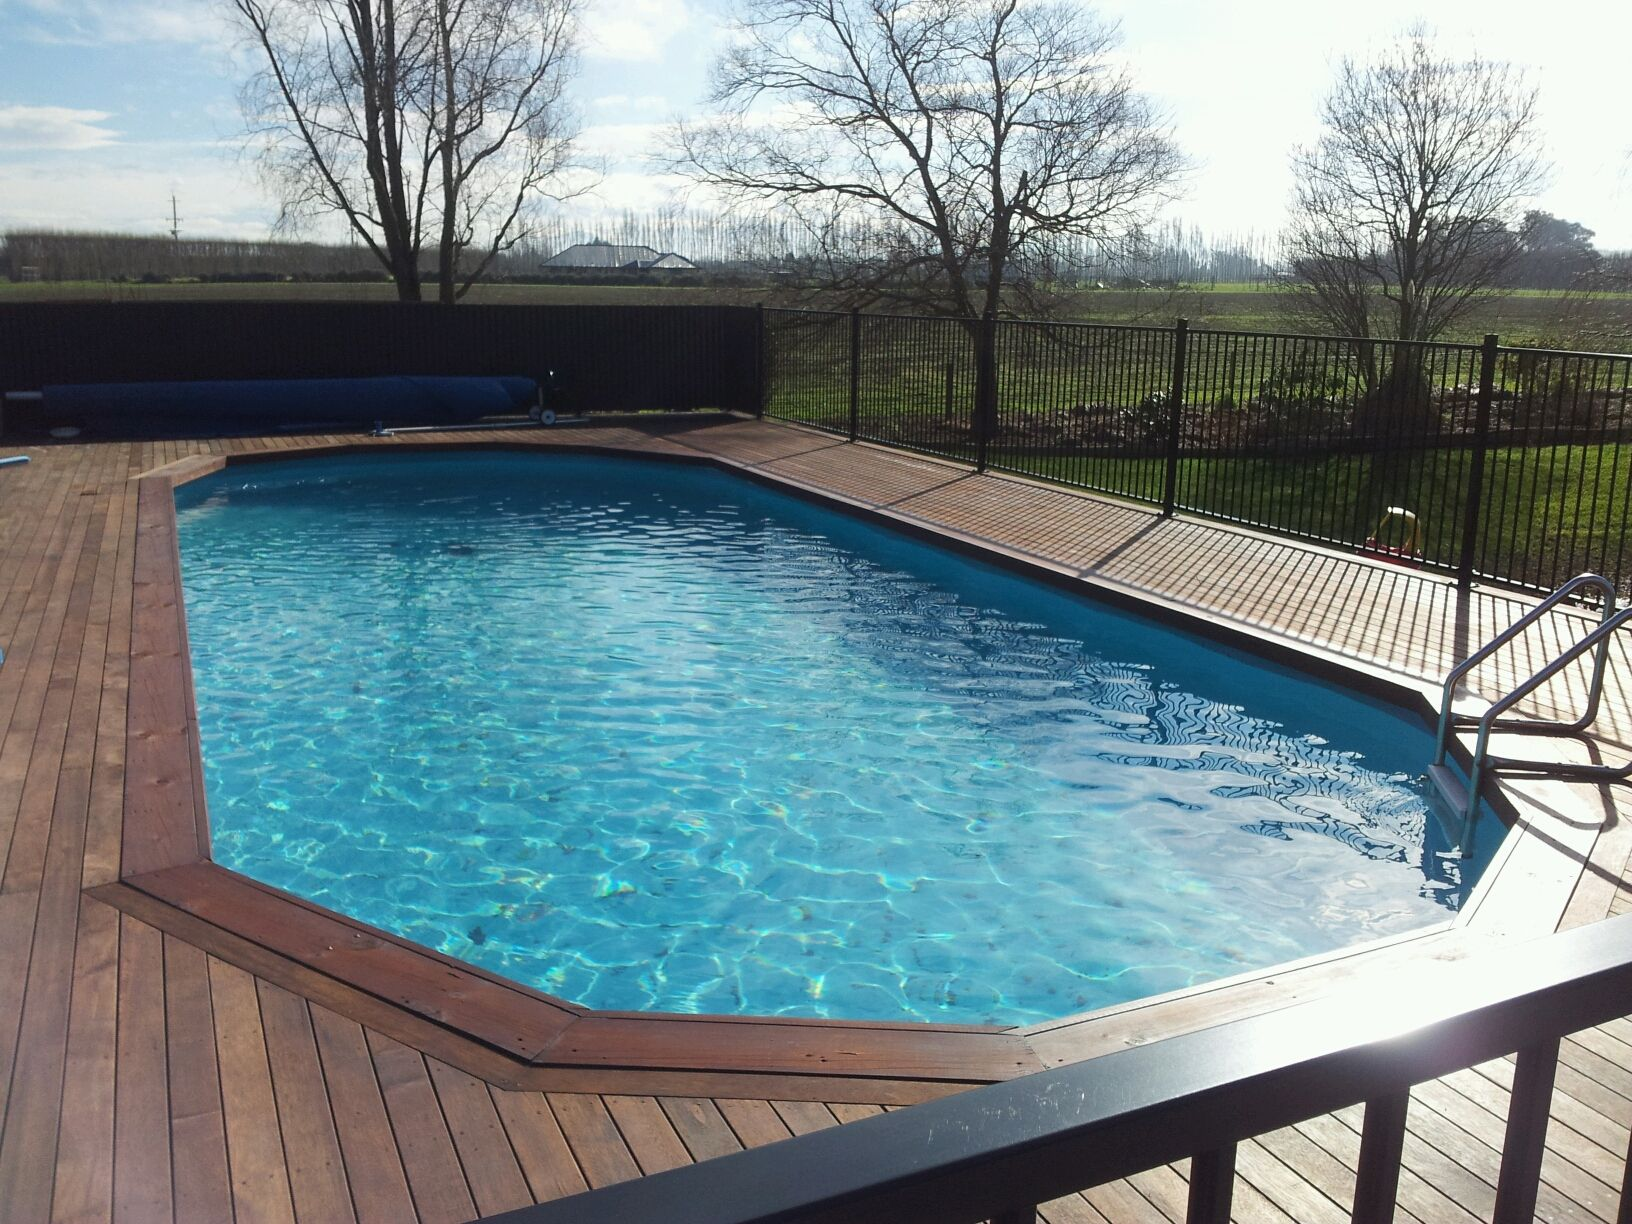 South Seas Deep End 1 2 1 8m Chlorine Compatible Swimming Pools Pool Land Supplier Of Spa Swimming Pool Decks Backyard Pool Backyard Pool Landscaping